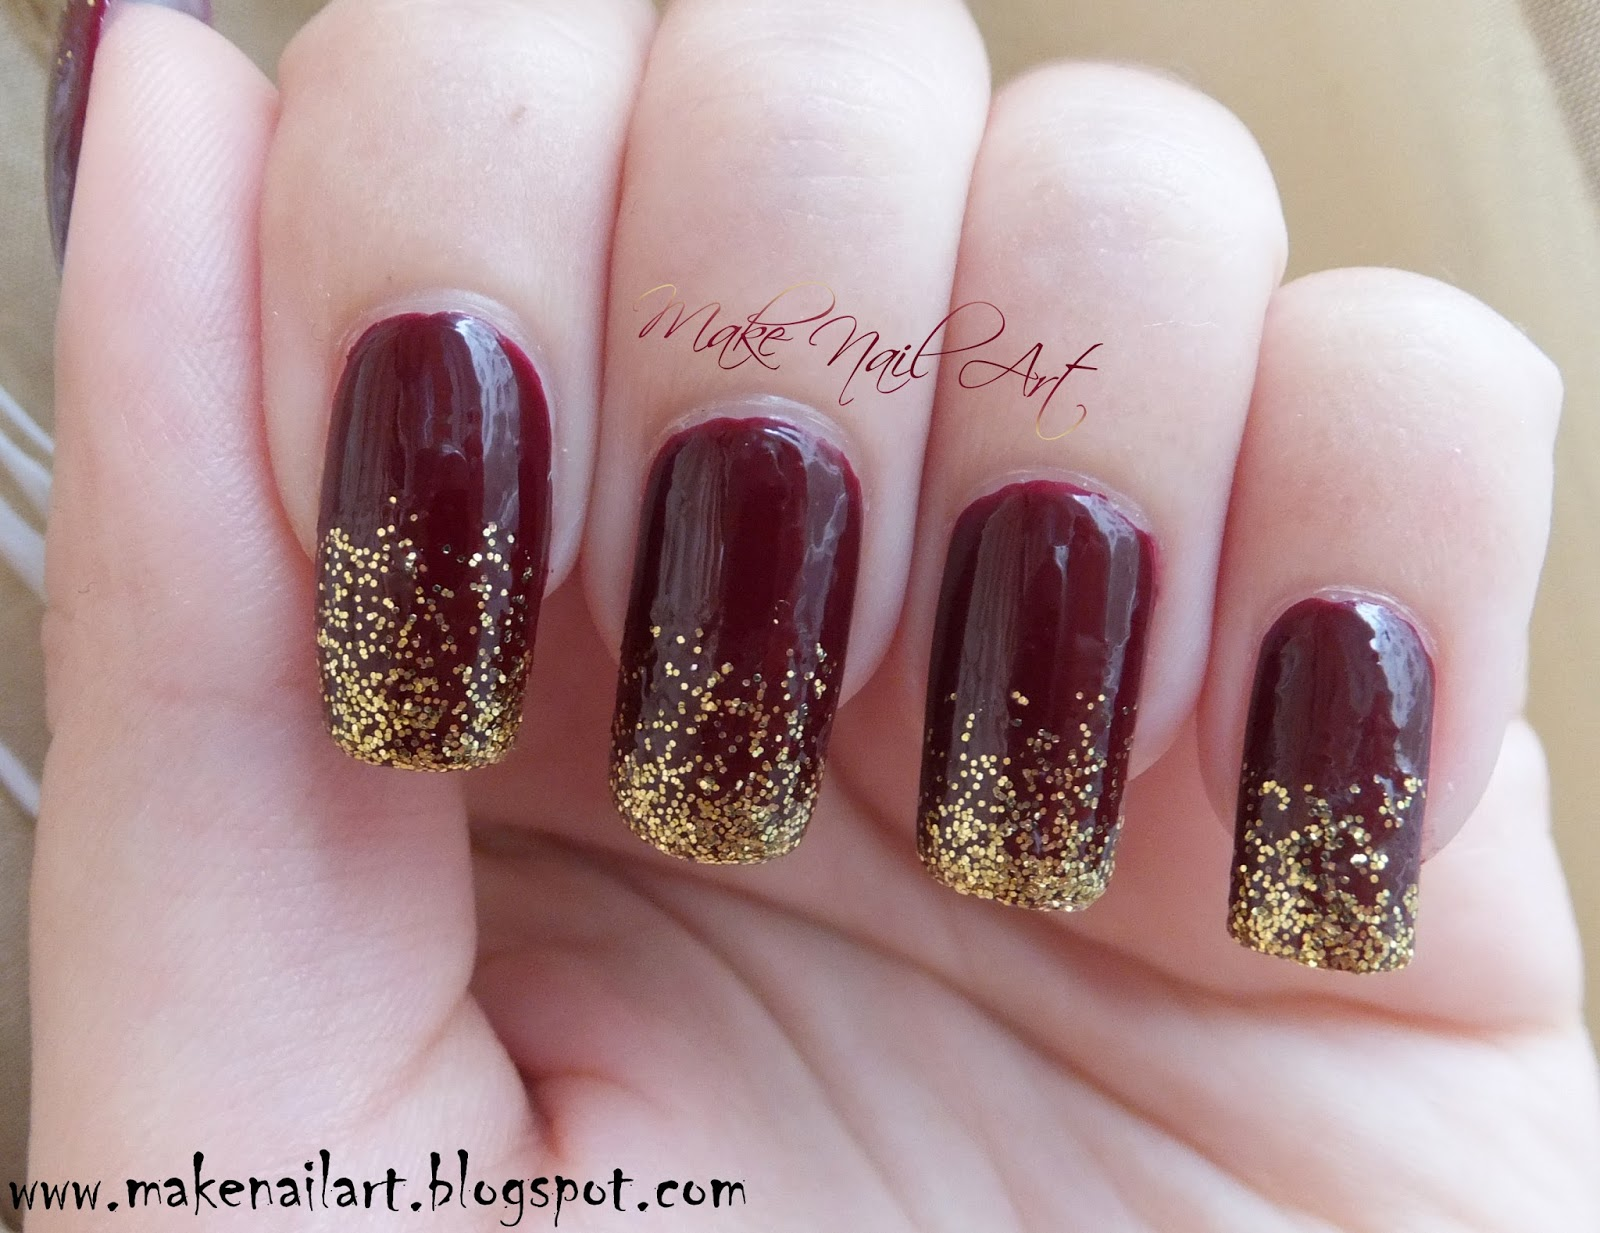 Make Nail Art: Easy And Fast Autumn / Fall Inspired Nail Art Design ...